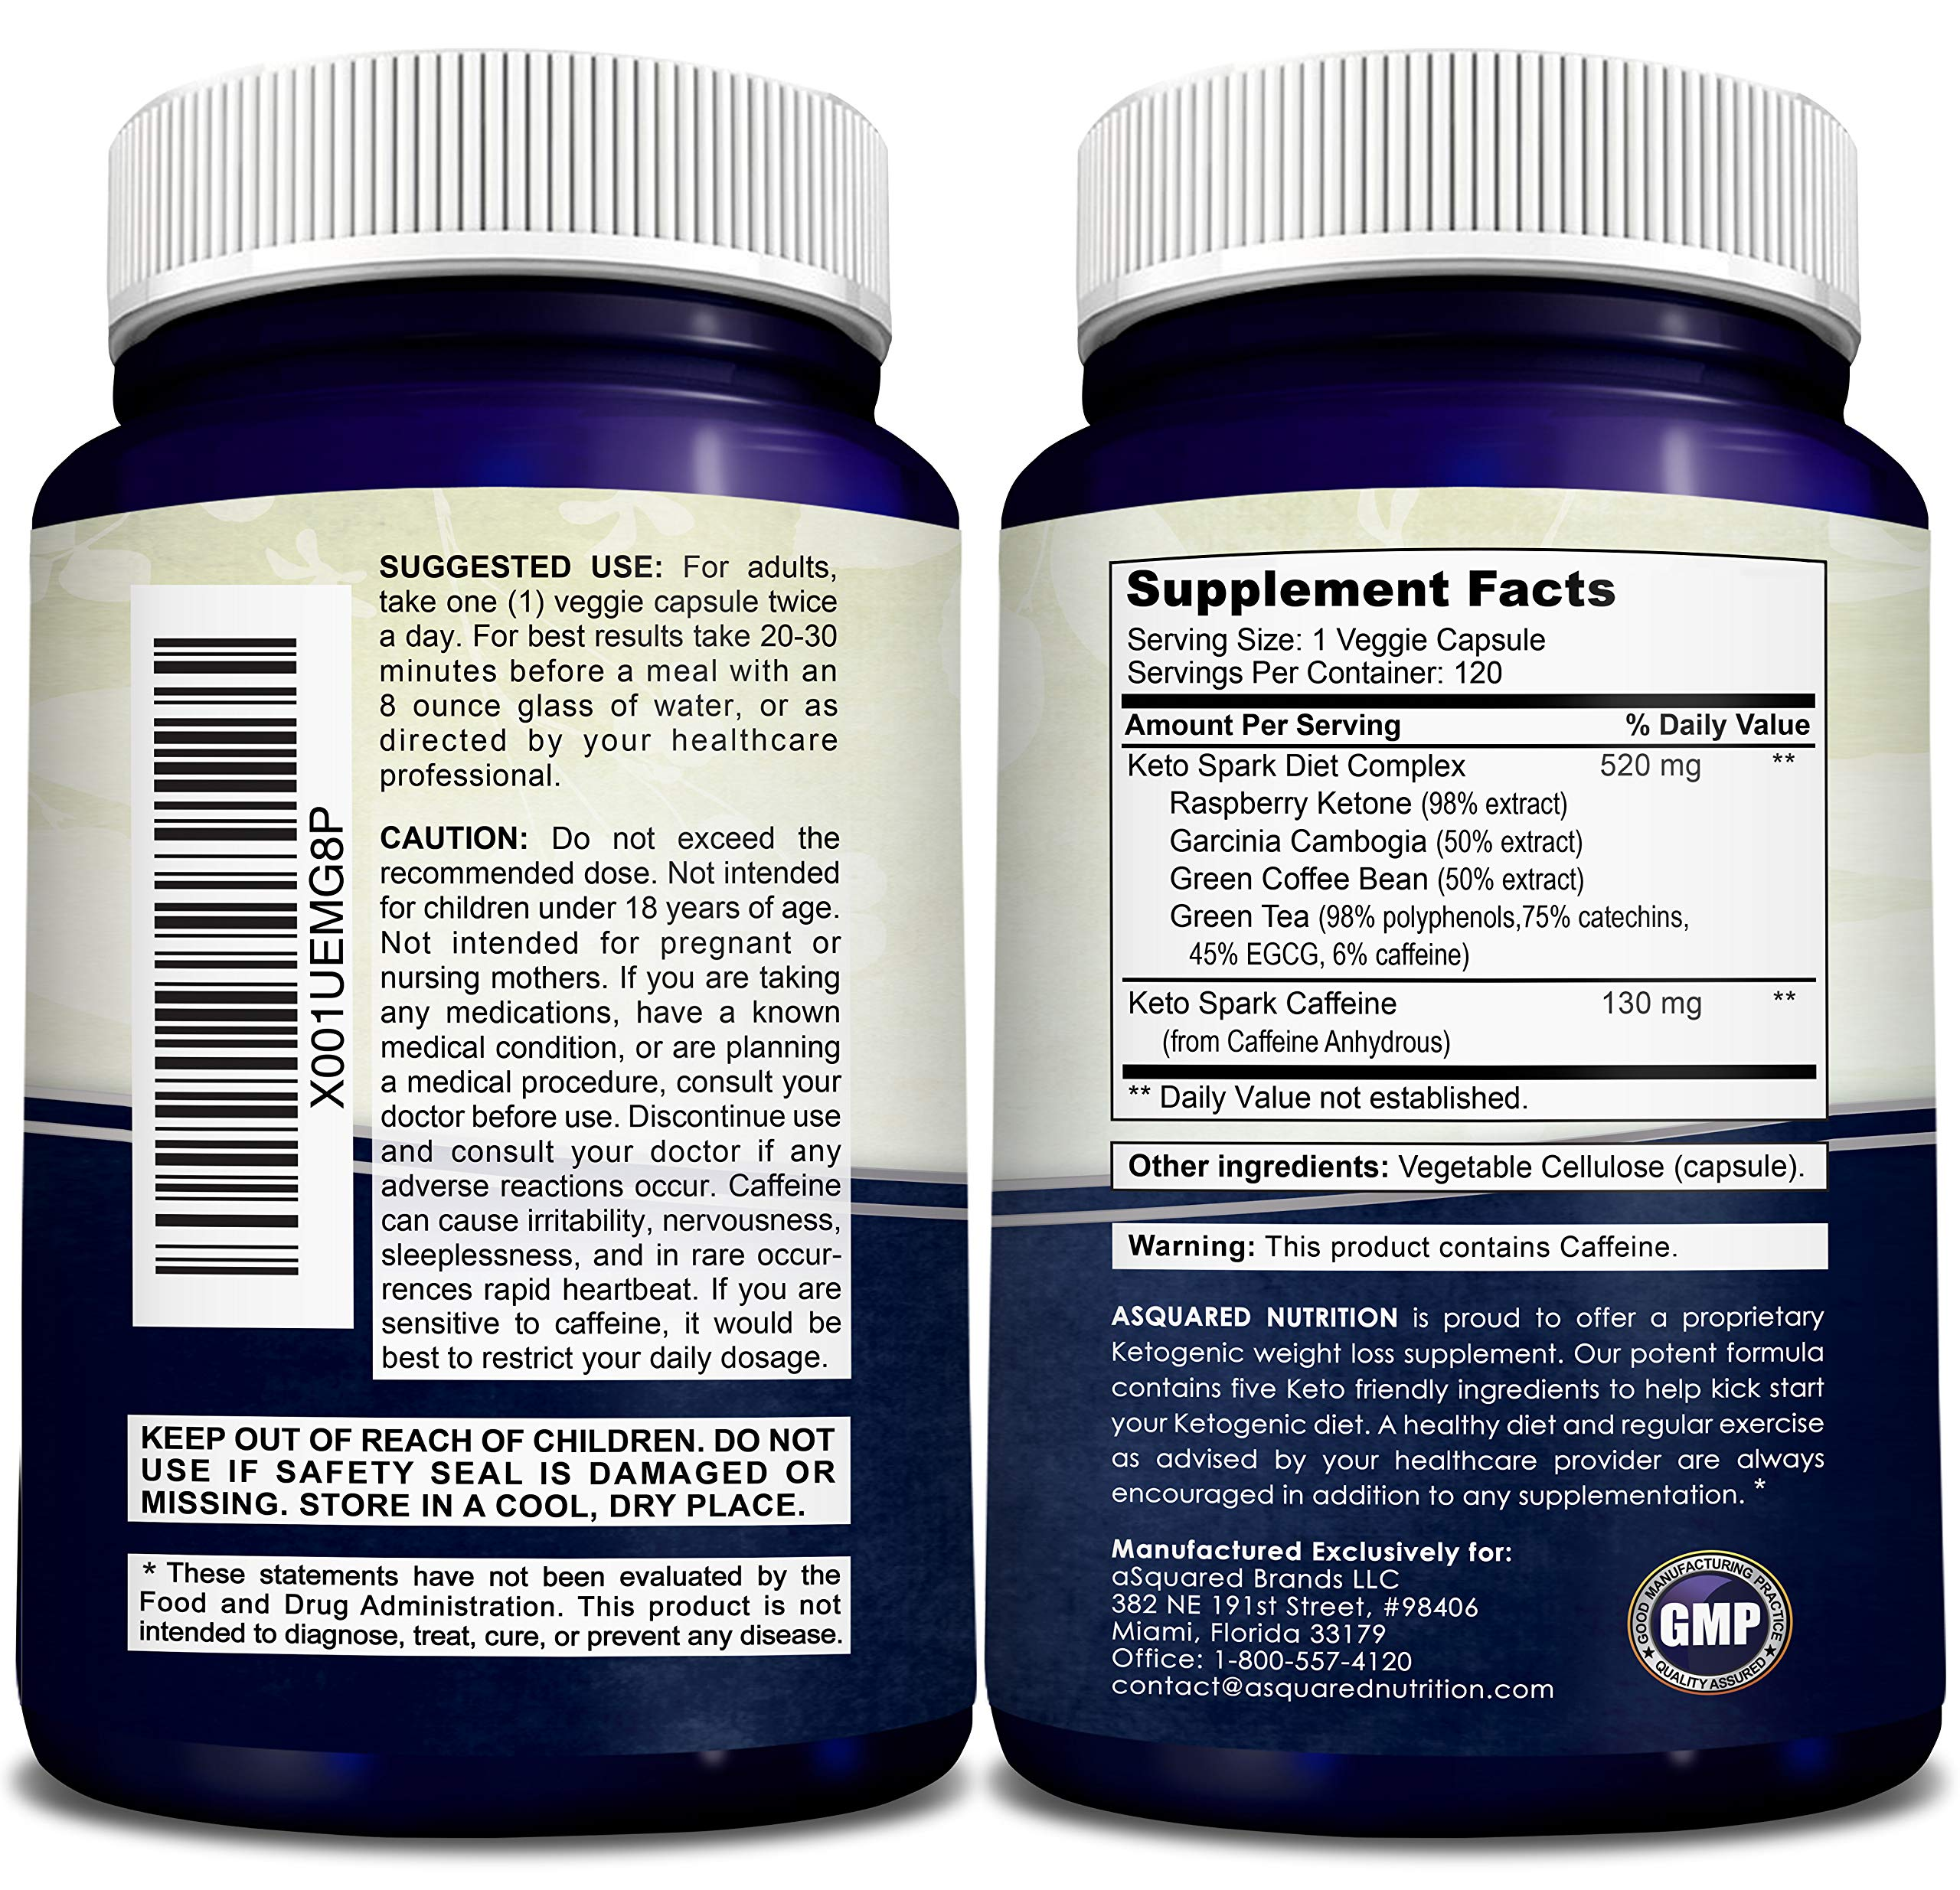 Keto Spark - Supplement for Weight Loss (120 Capsules) - Pills Approved for The Ketogenic & Paleo Diet - Helps Stay in Ketosis, Increase Energy & Focus - Caffeine & Ketones for Women & Men by aSquared Nutrition (Image #6)